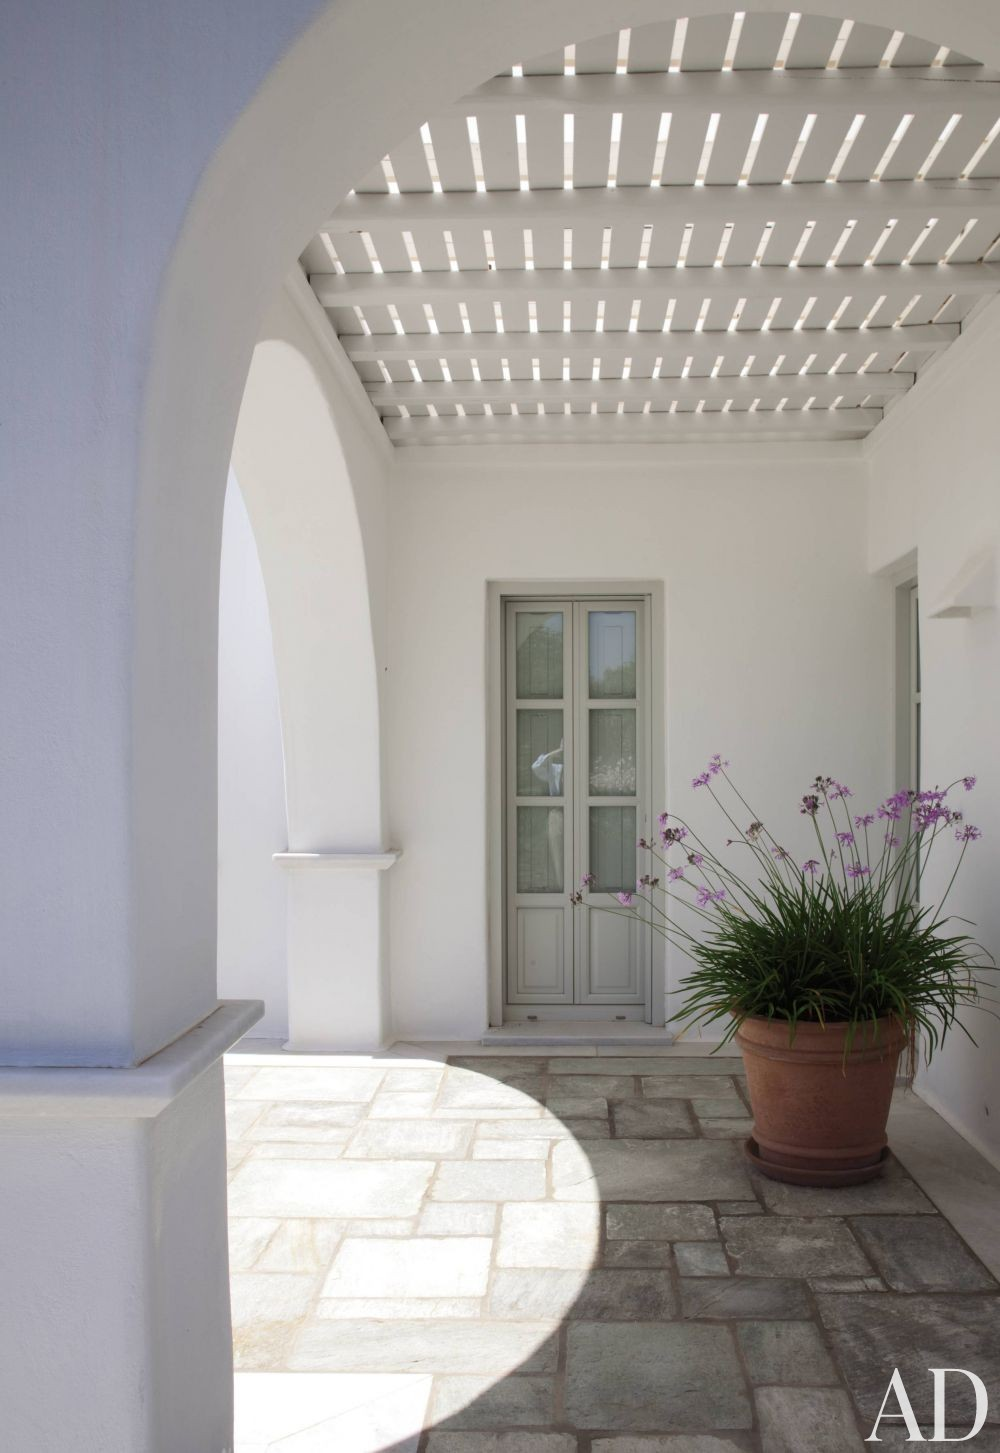 Exotic Outdoor Space by Mark Gaudette and Torsten Bessel in Paros, Greece